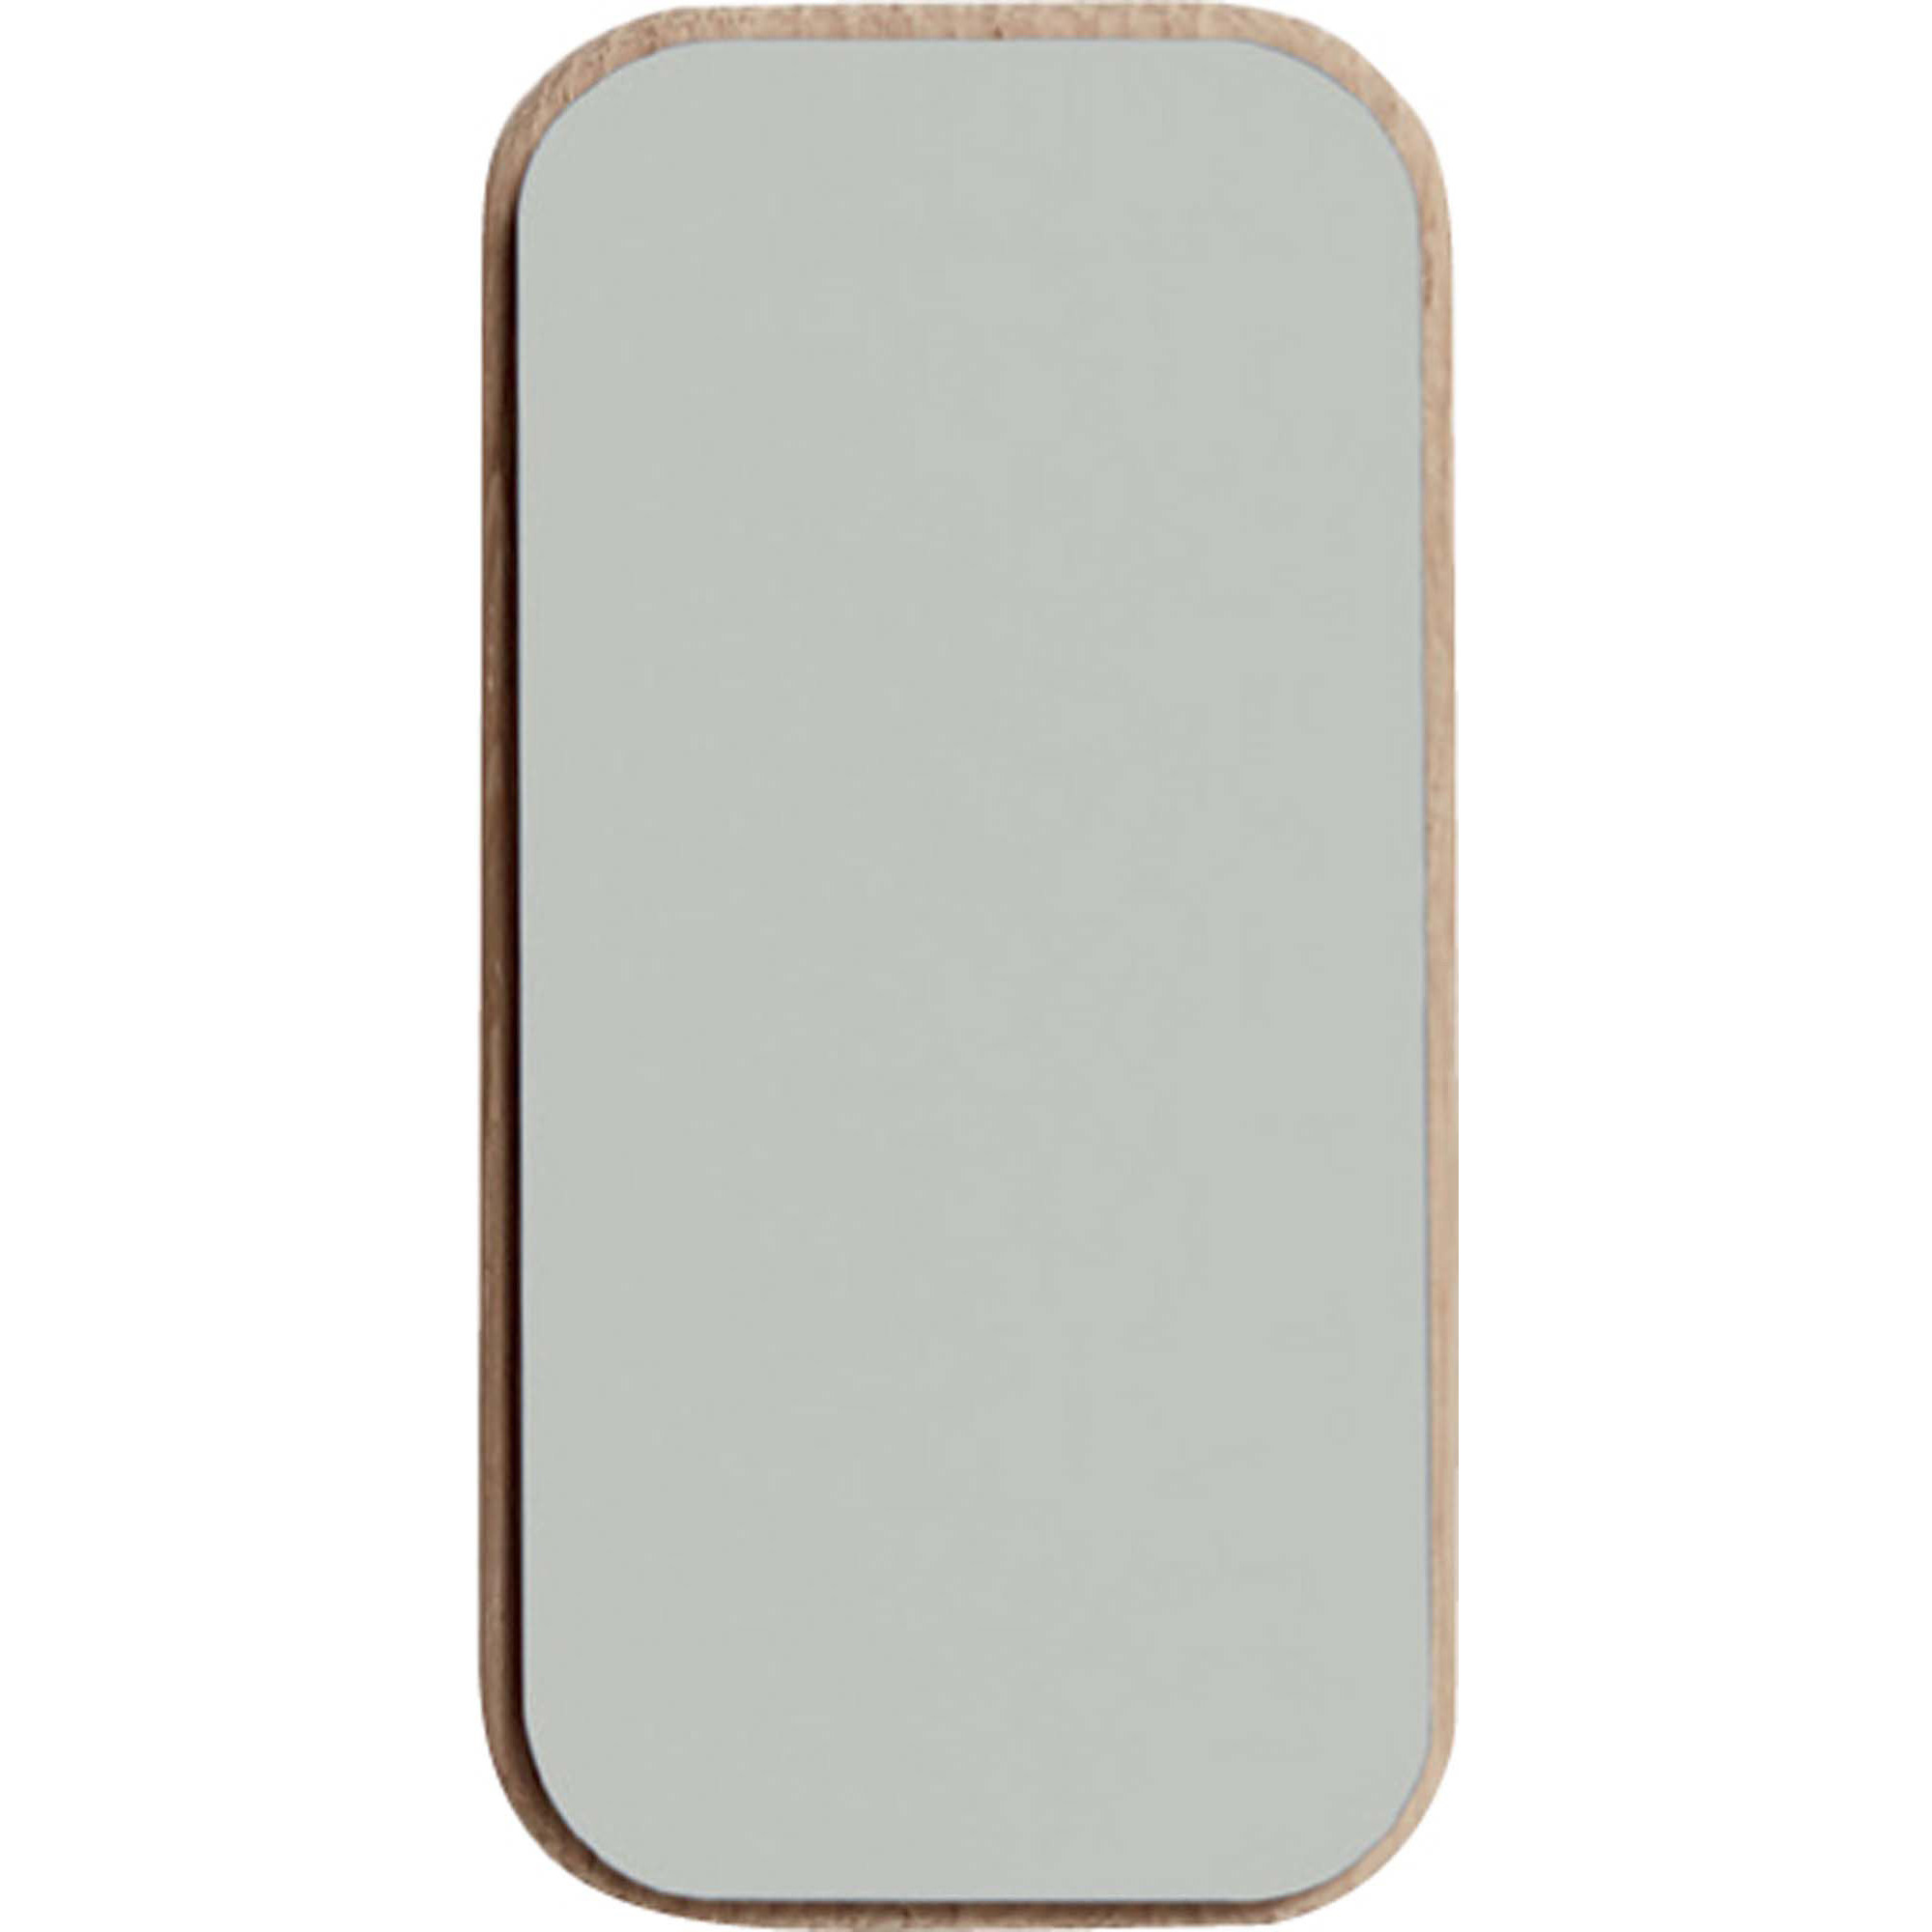 Bilde av Andersen Furniture Create Me Lokk 6 X 12 Cm Iron Grey